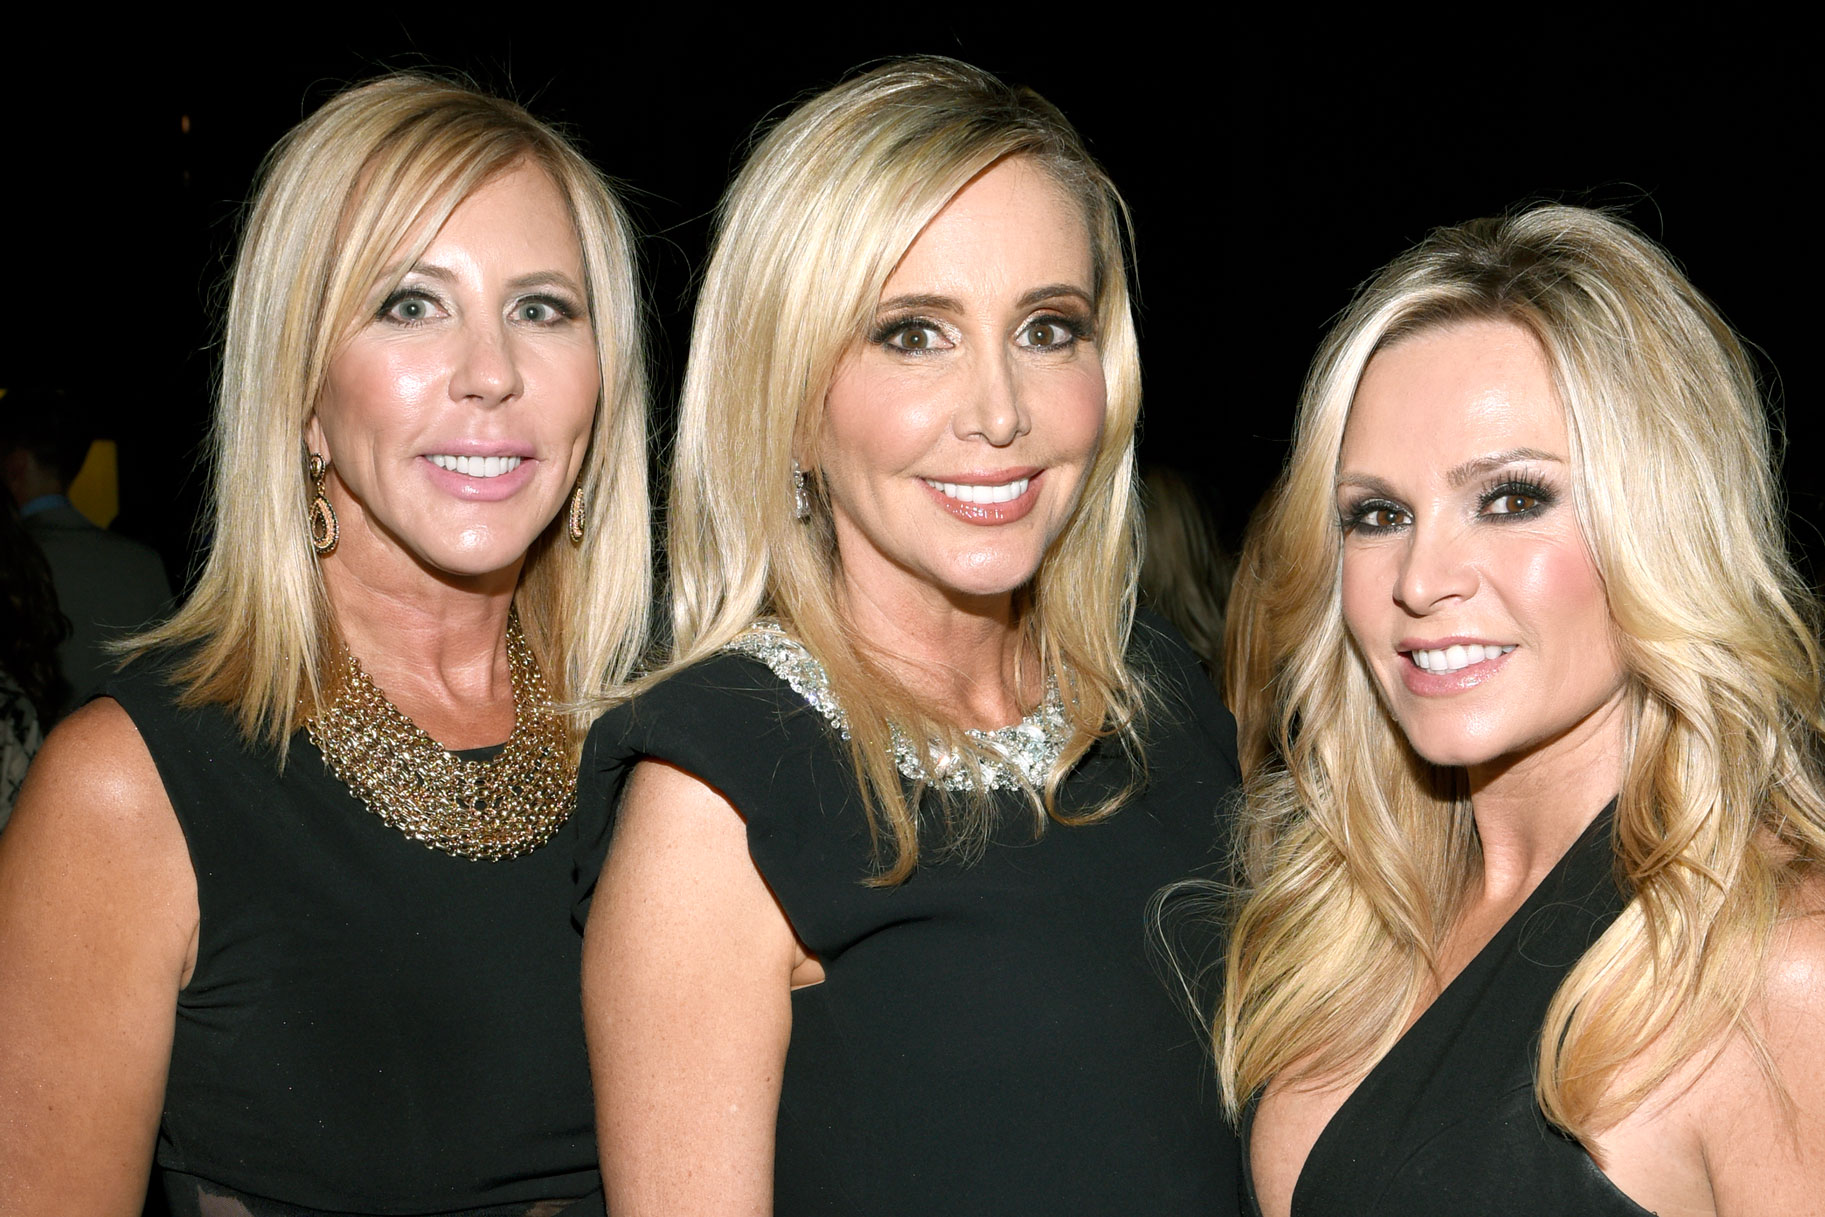 Vicki Gunvalson's Daughter Briana Culberson To Join 'Real Housewives' Full Time